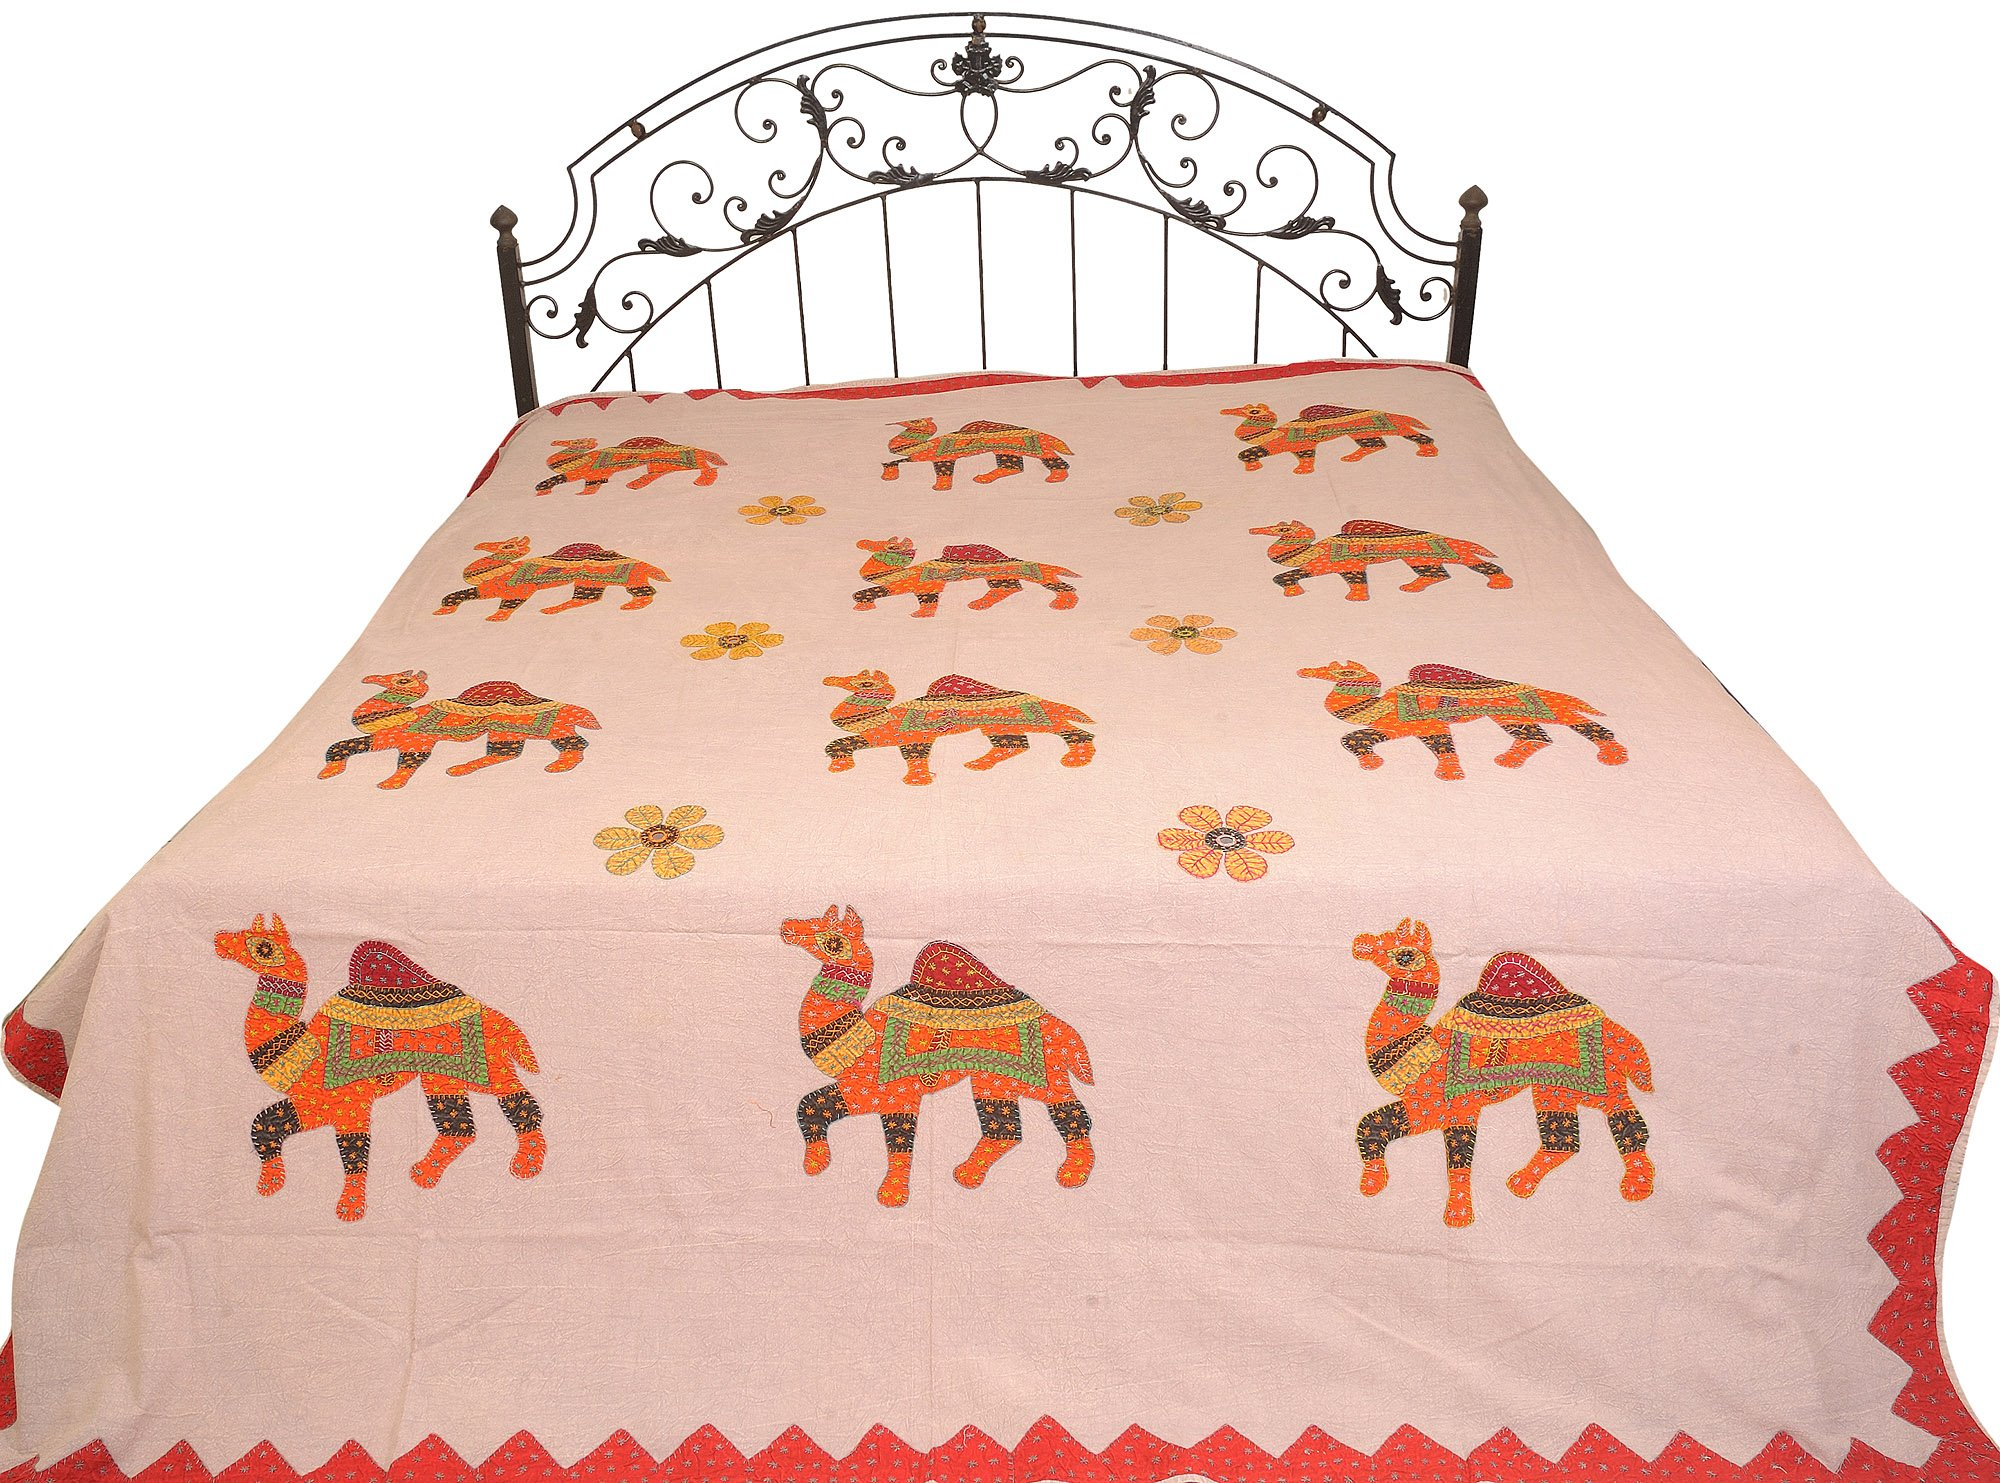 Violet-Ice Stonewashed Bedspread from Jaipur with Applique Camels - Pure Cotton